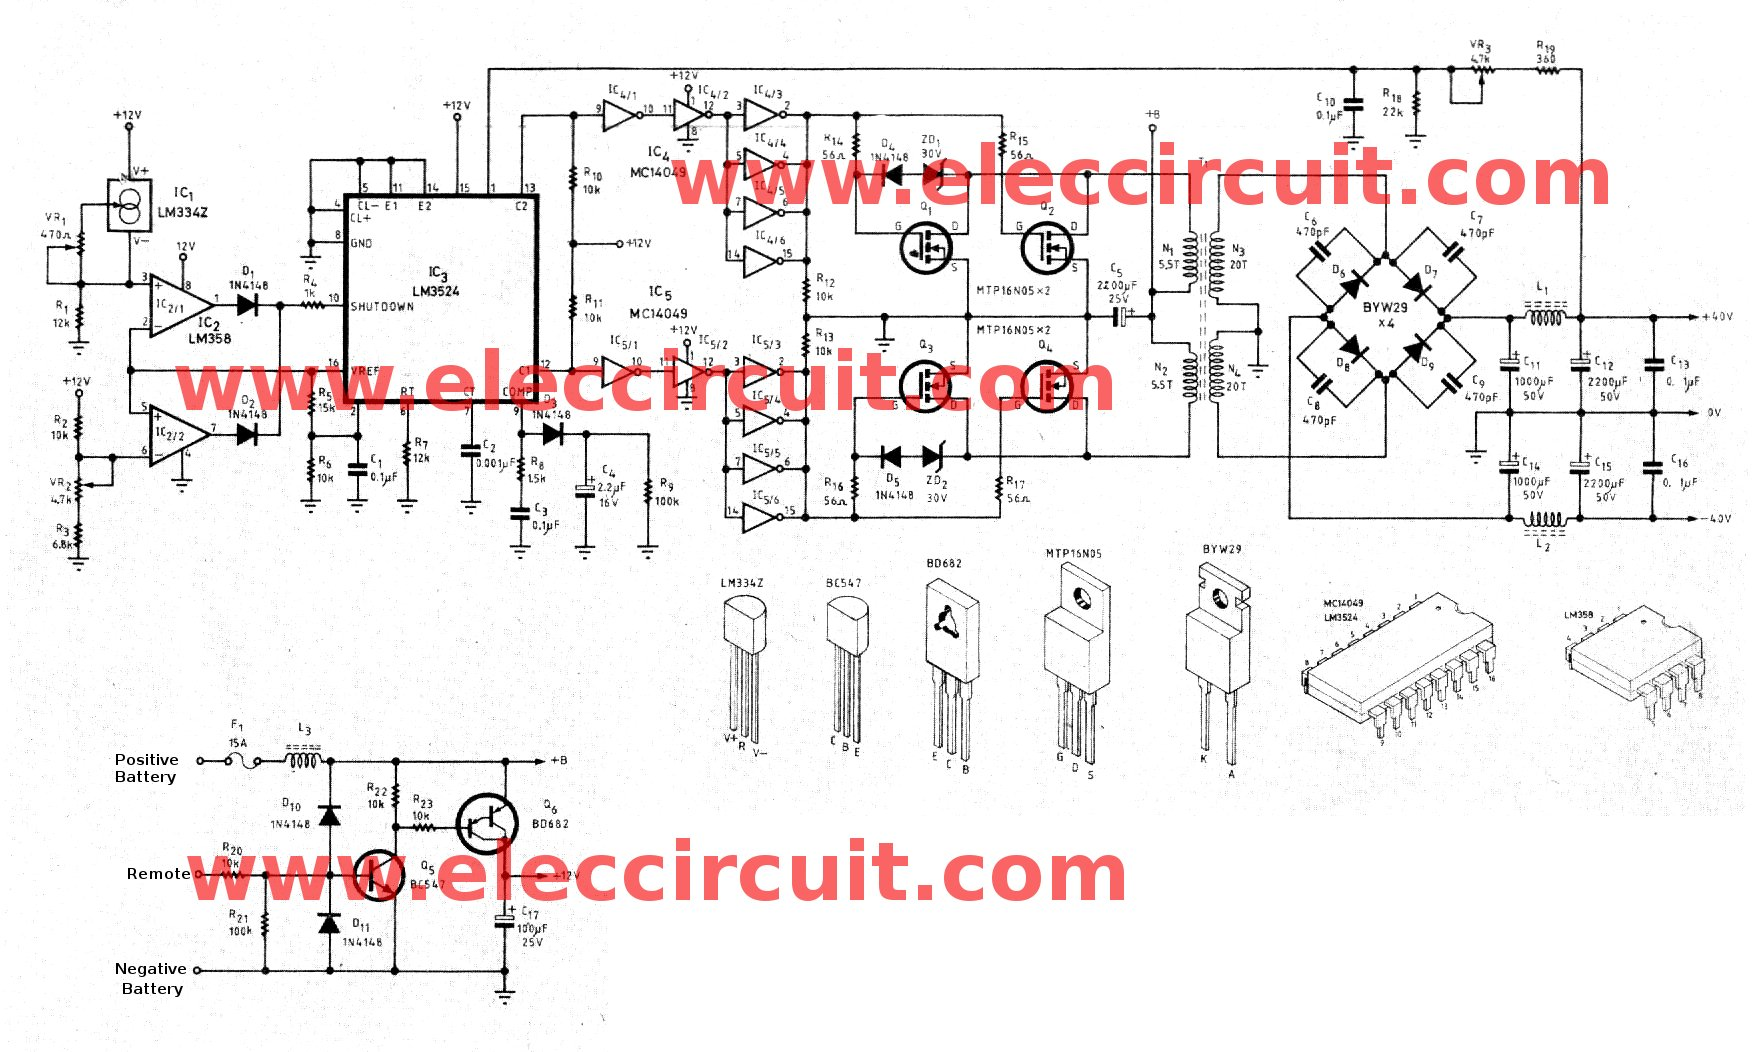 12v Dc Step Up Converter Old Circuits 12vdc Regulated Power Supply With Schematic Diagram Share The To 50v For